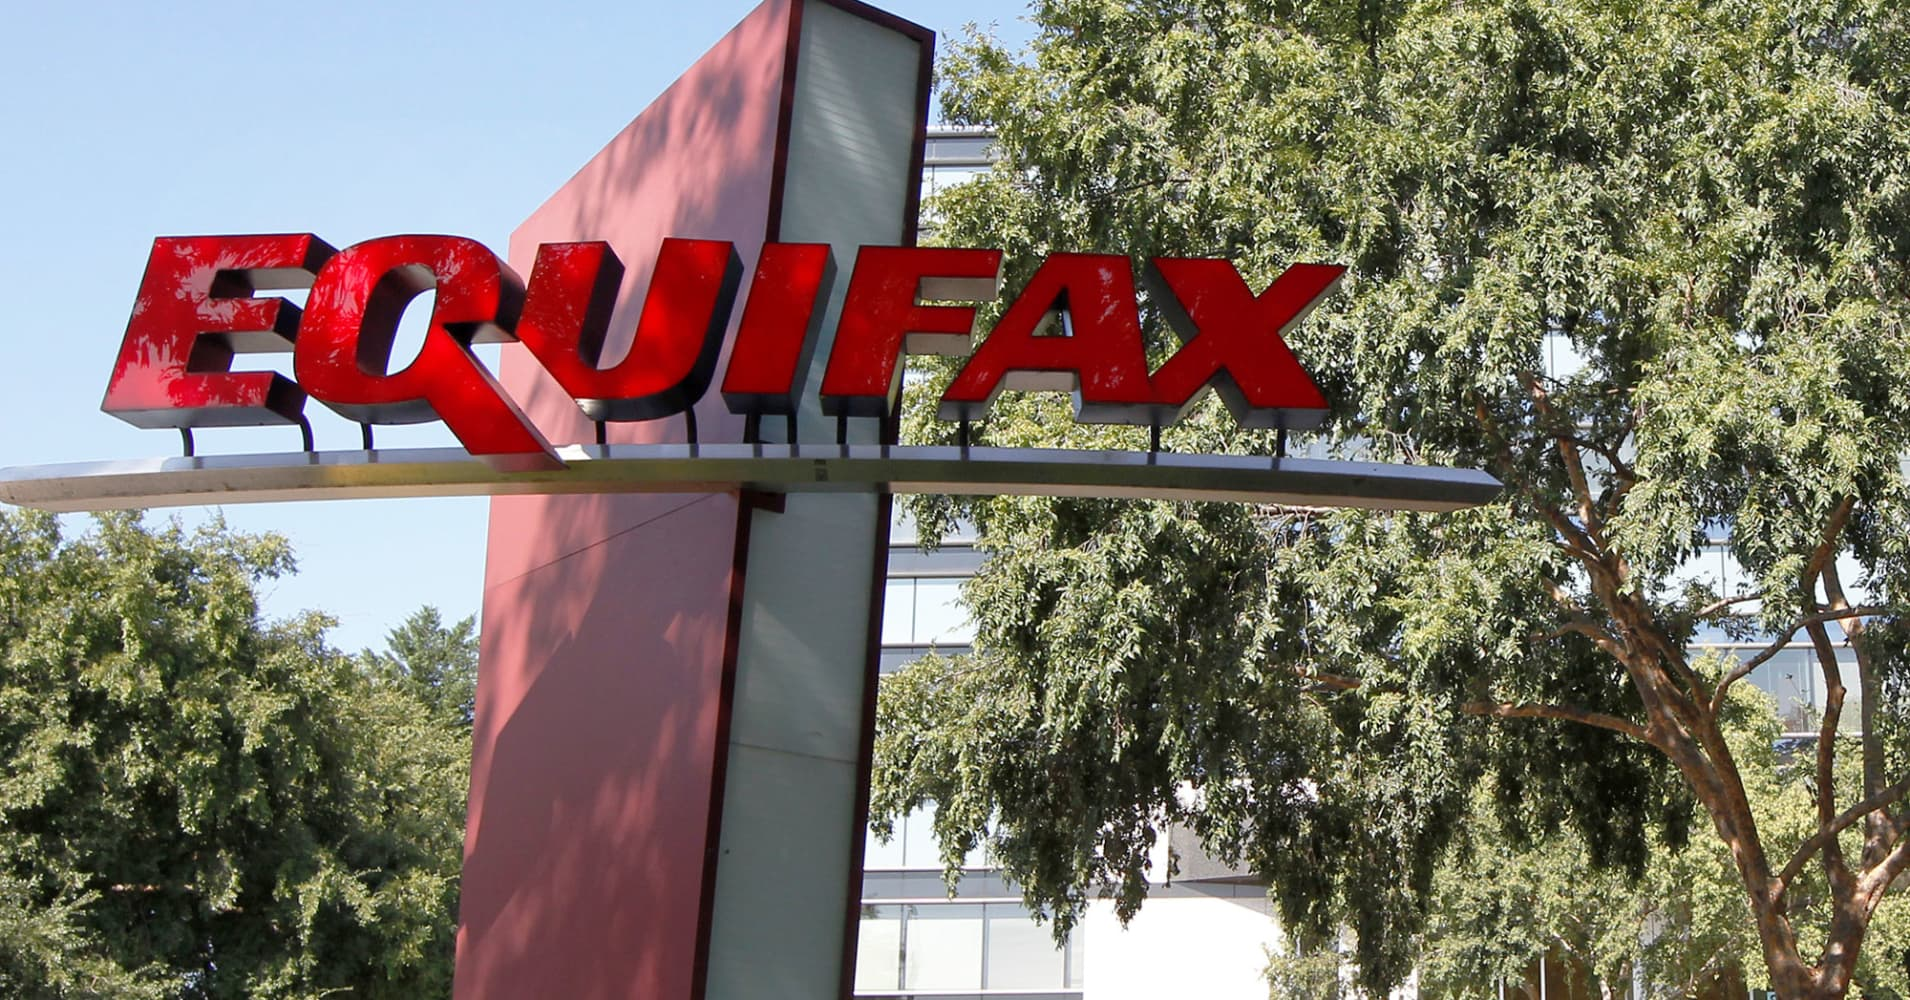 Former Equifax executive charged with insider trading for dumping nearly $1 million ahead of data breach